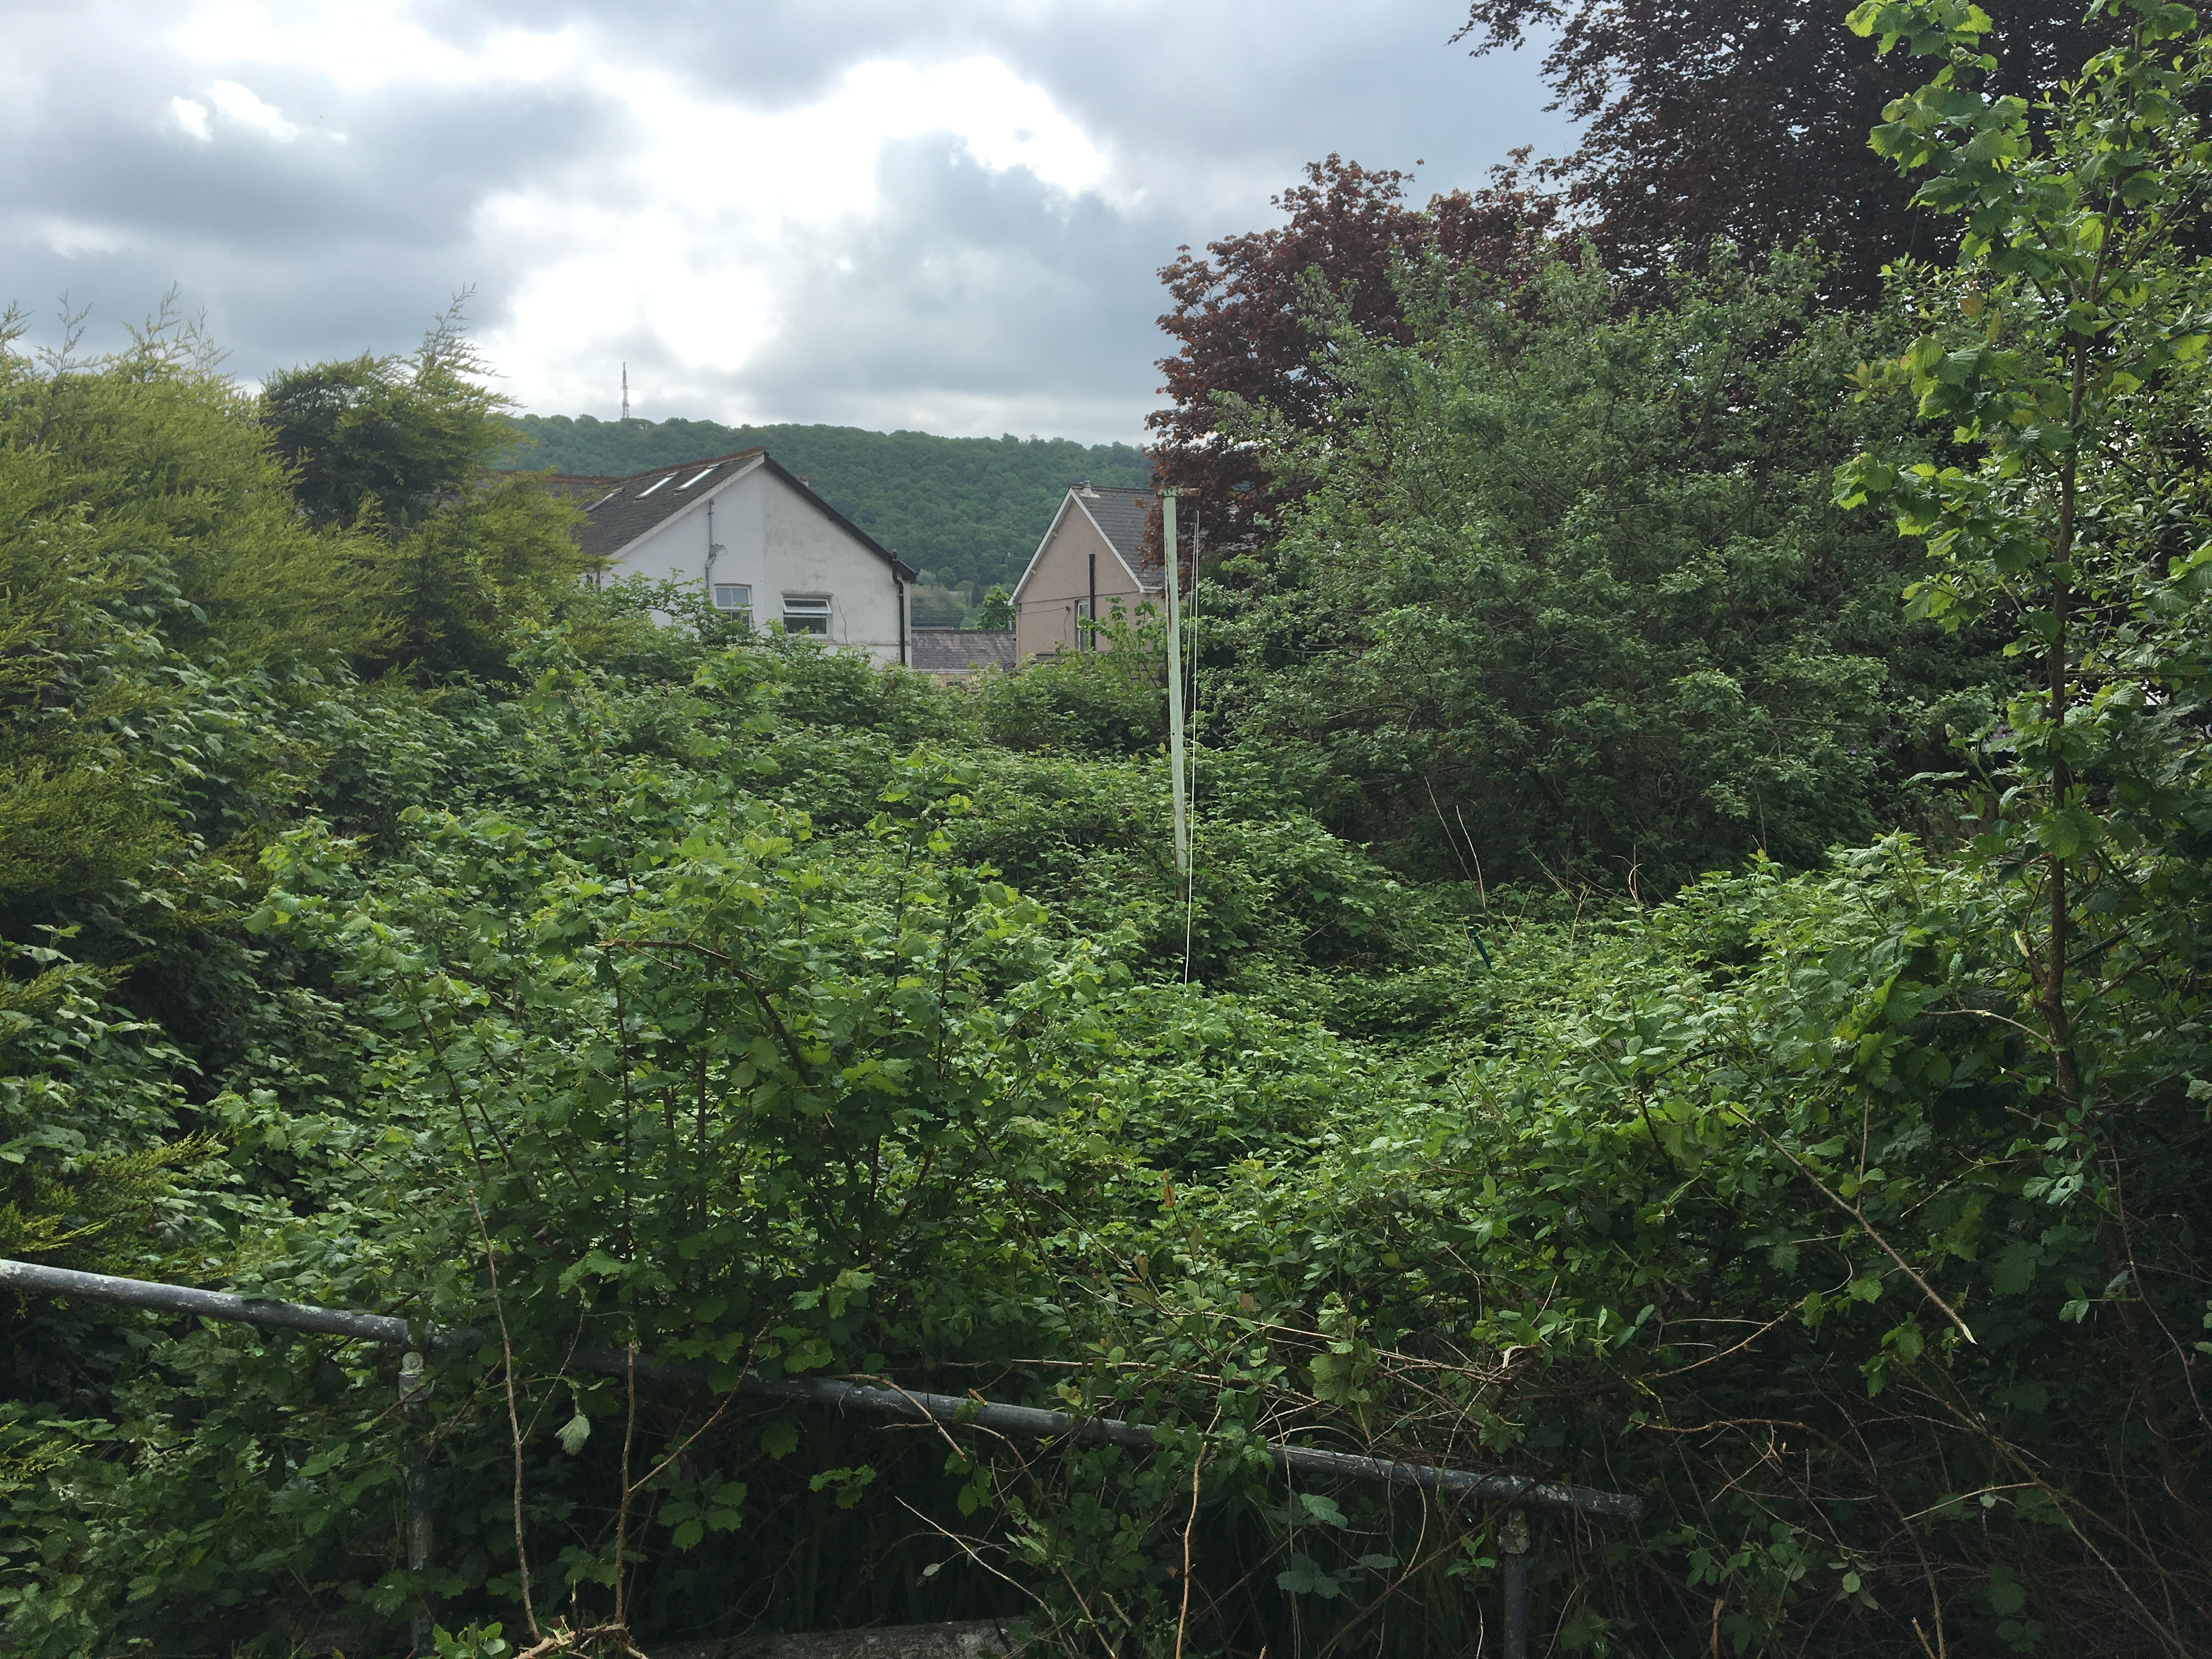 Large garden overgrown